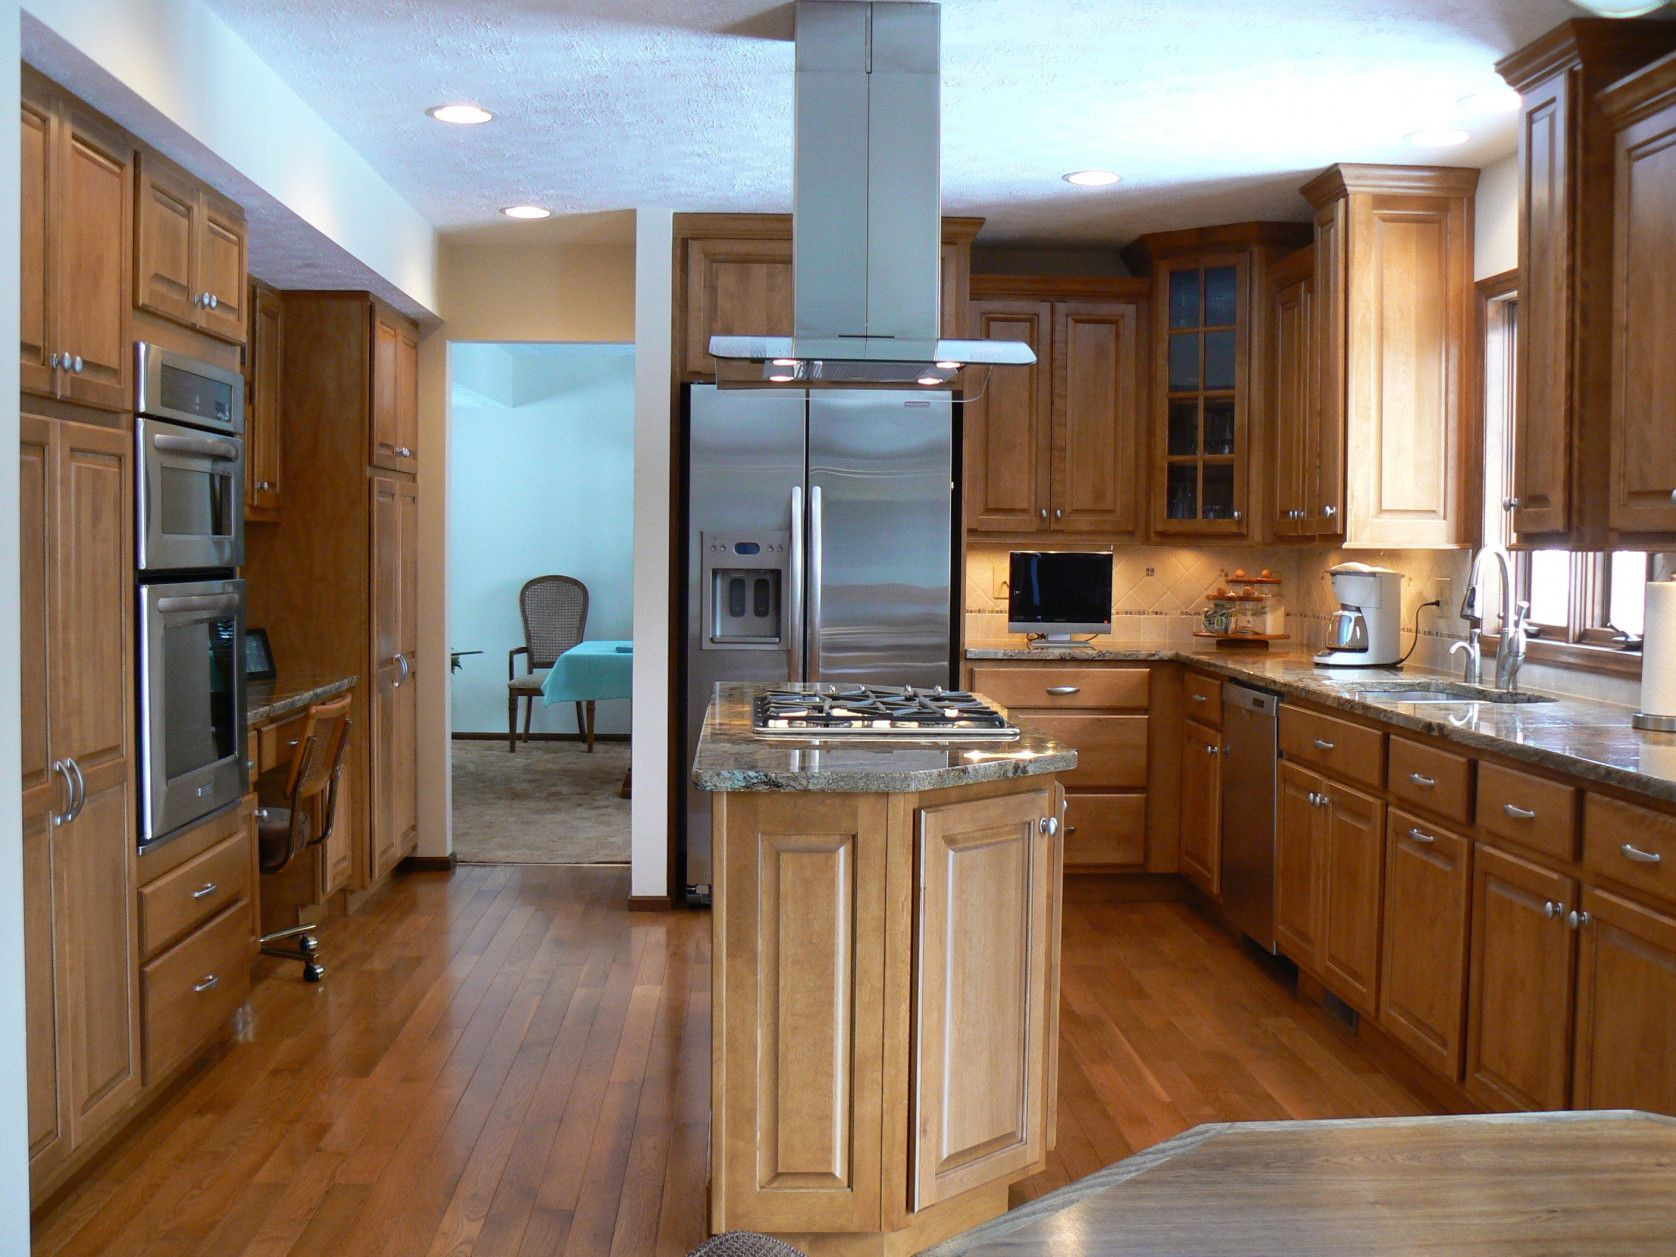 70 Amish Cabinet Makers Indiana Apartment Kitchen Cabinet Ideas Check More At Http Kitchen Cabinet Makers Amish Kitchen Cabinets Kitchen Island Countertop